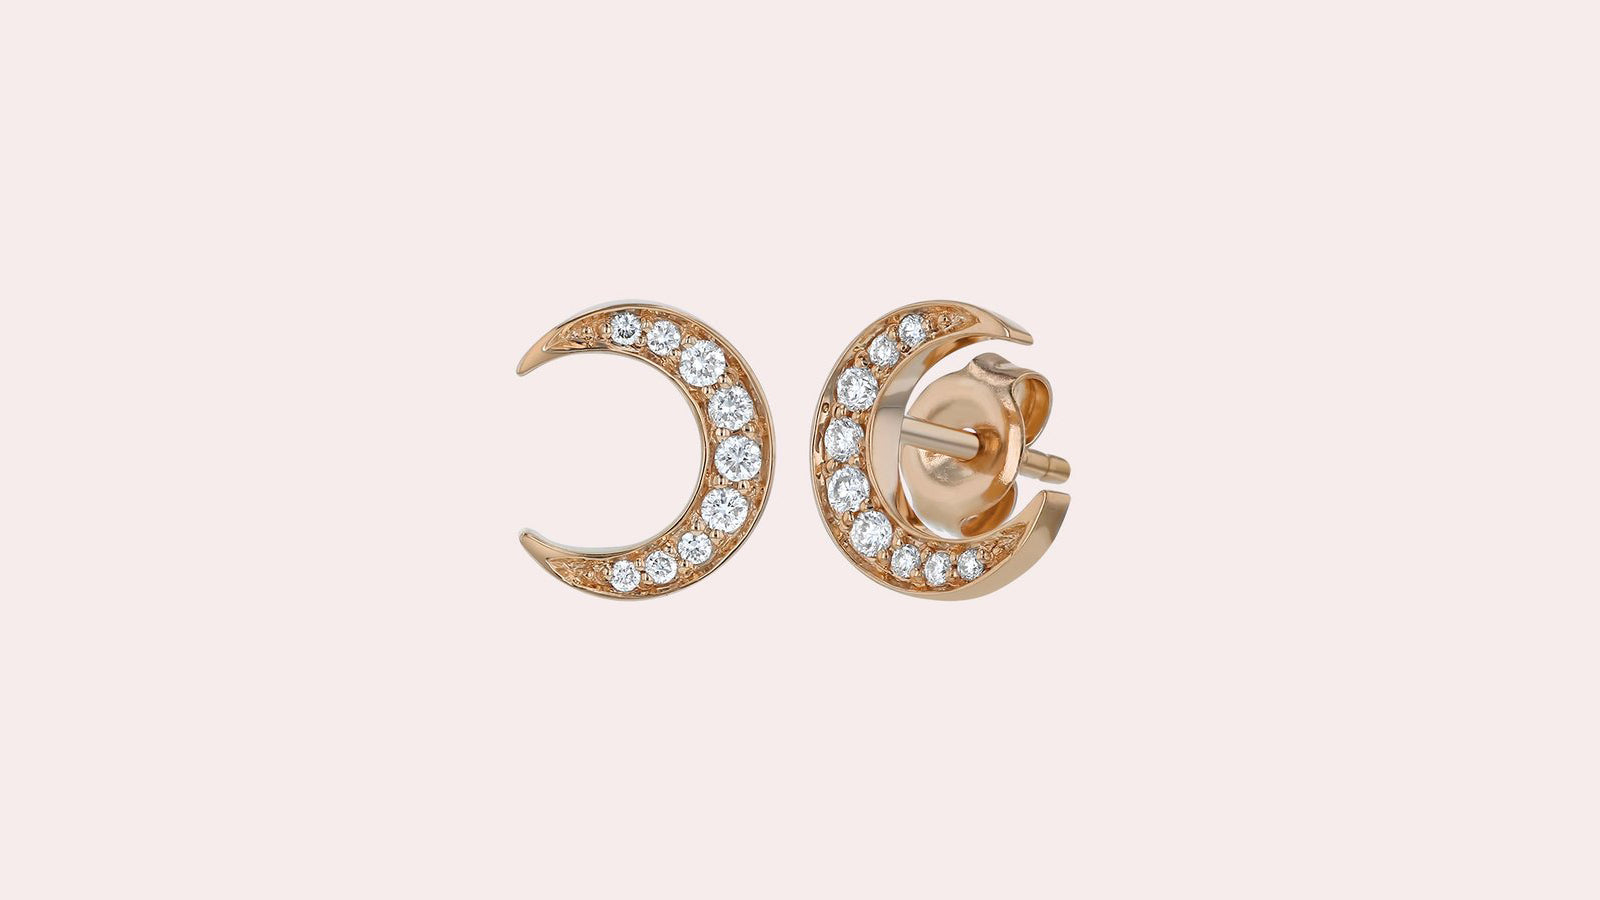 The Crescent Moon Stud